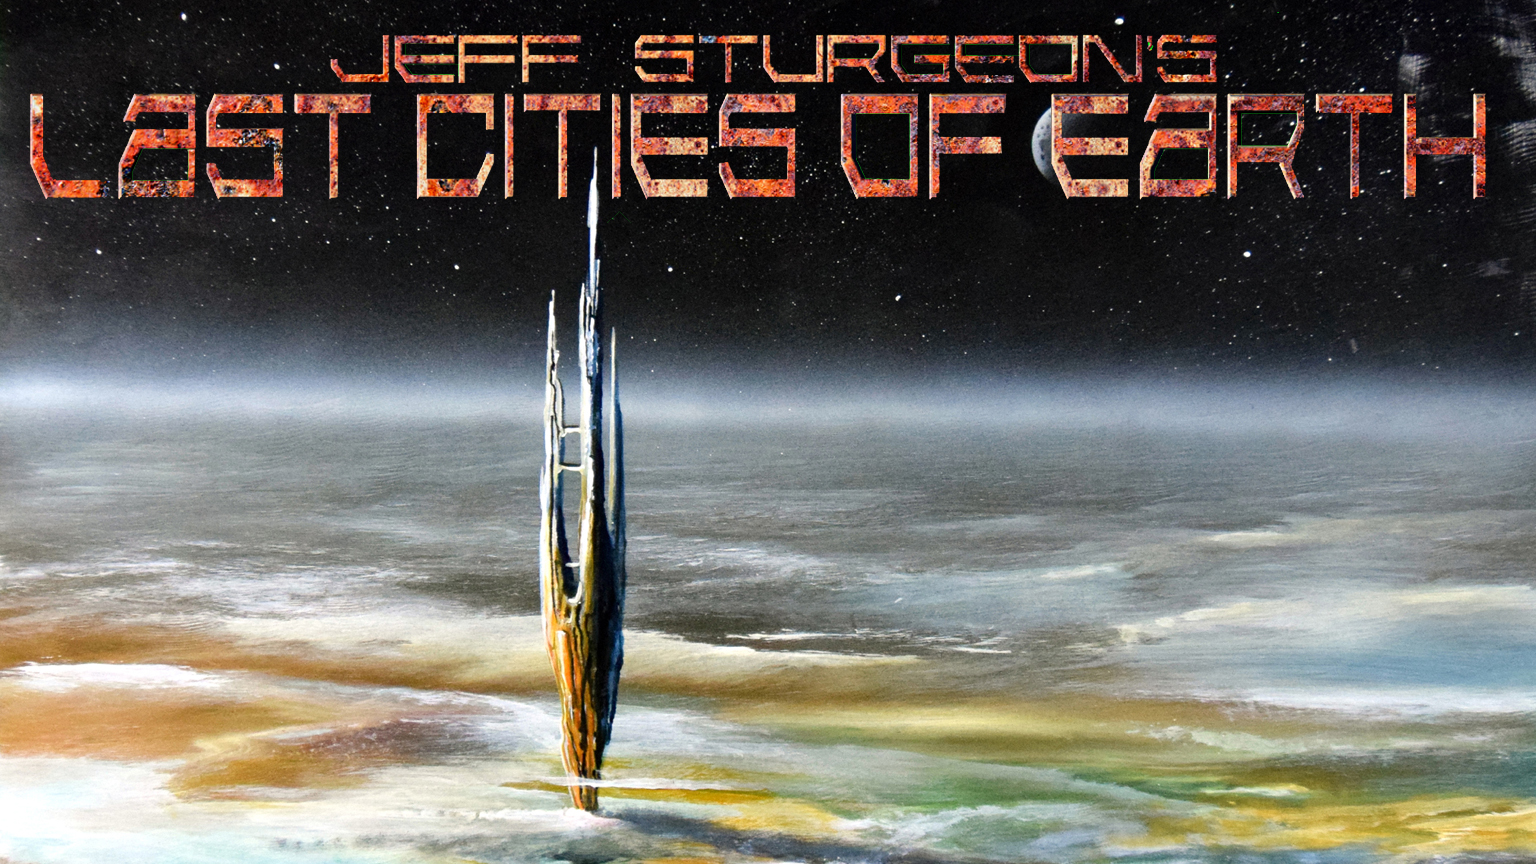 Last Cities of Earth